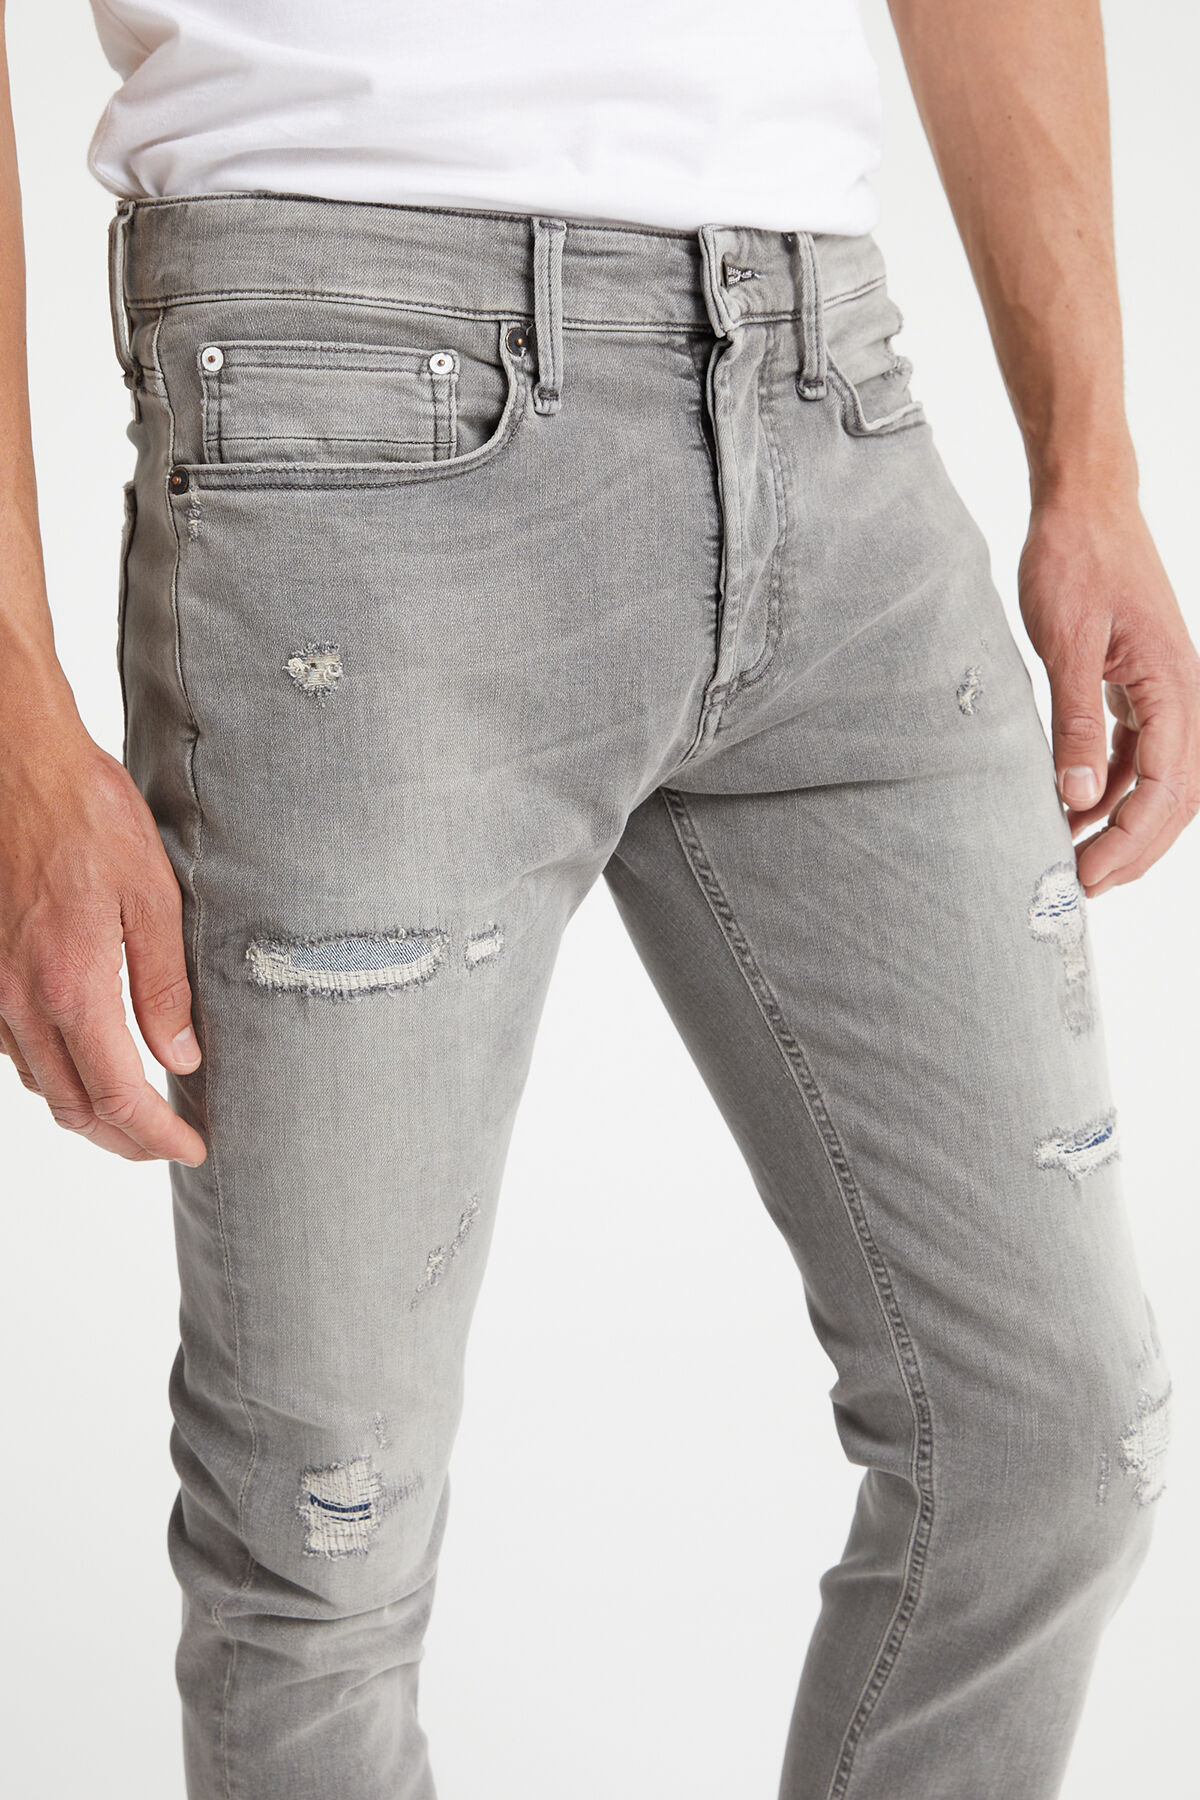 BOLT Grey Rip & Repair Denim - Skinny Fit